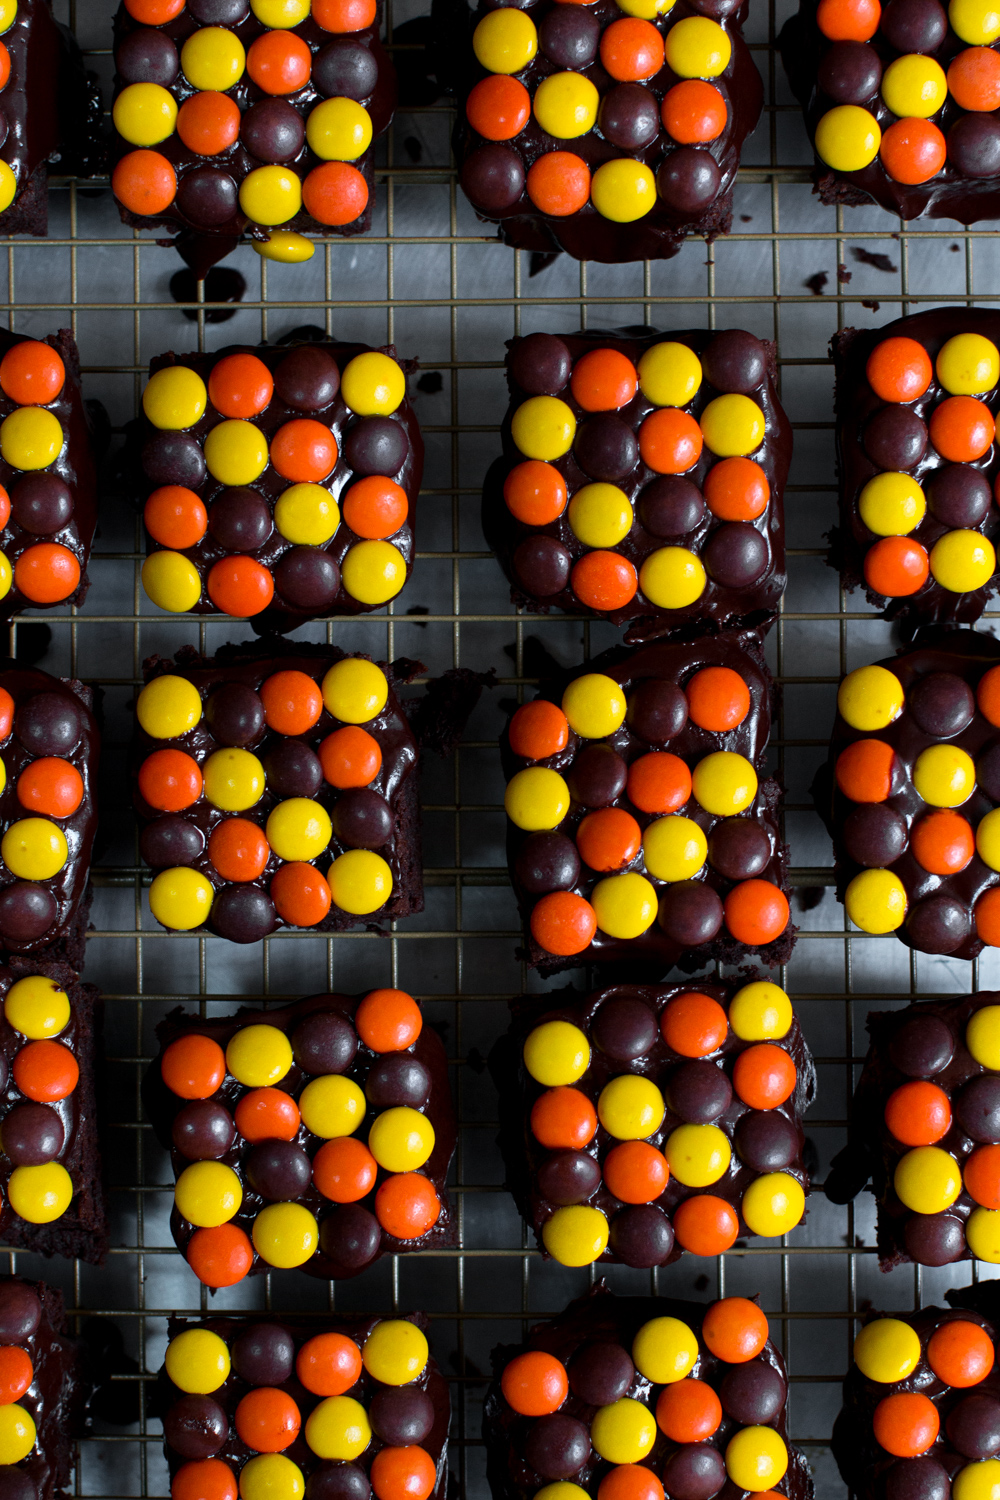 Rows and Rows of Reese's Pieces